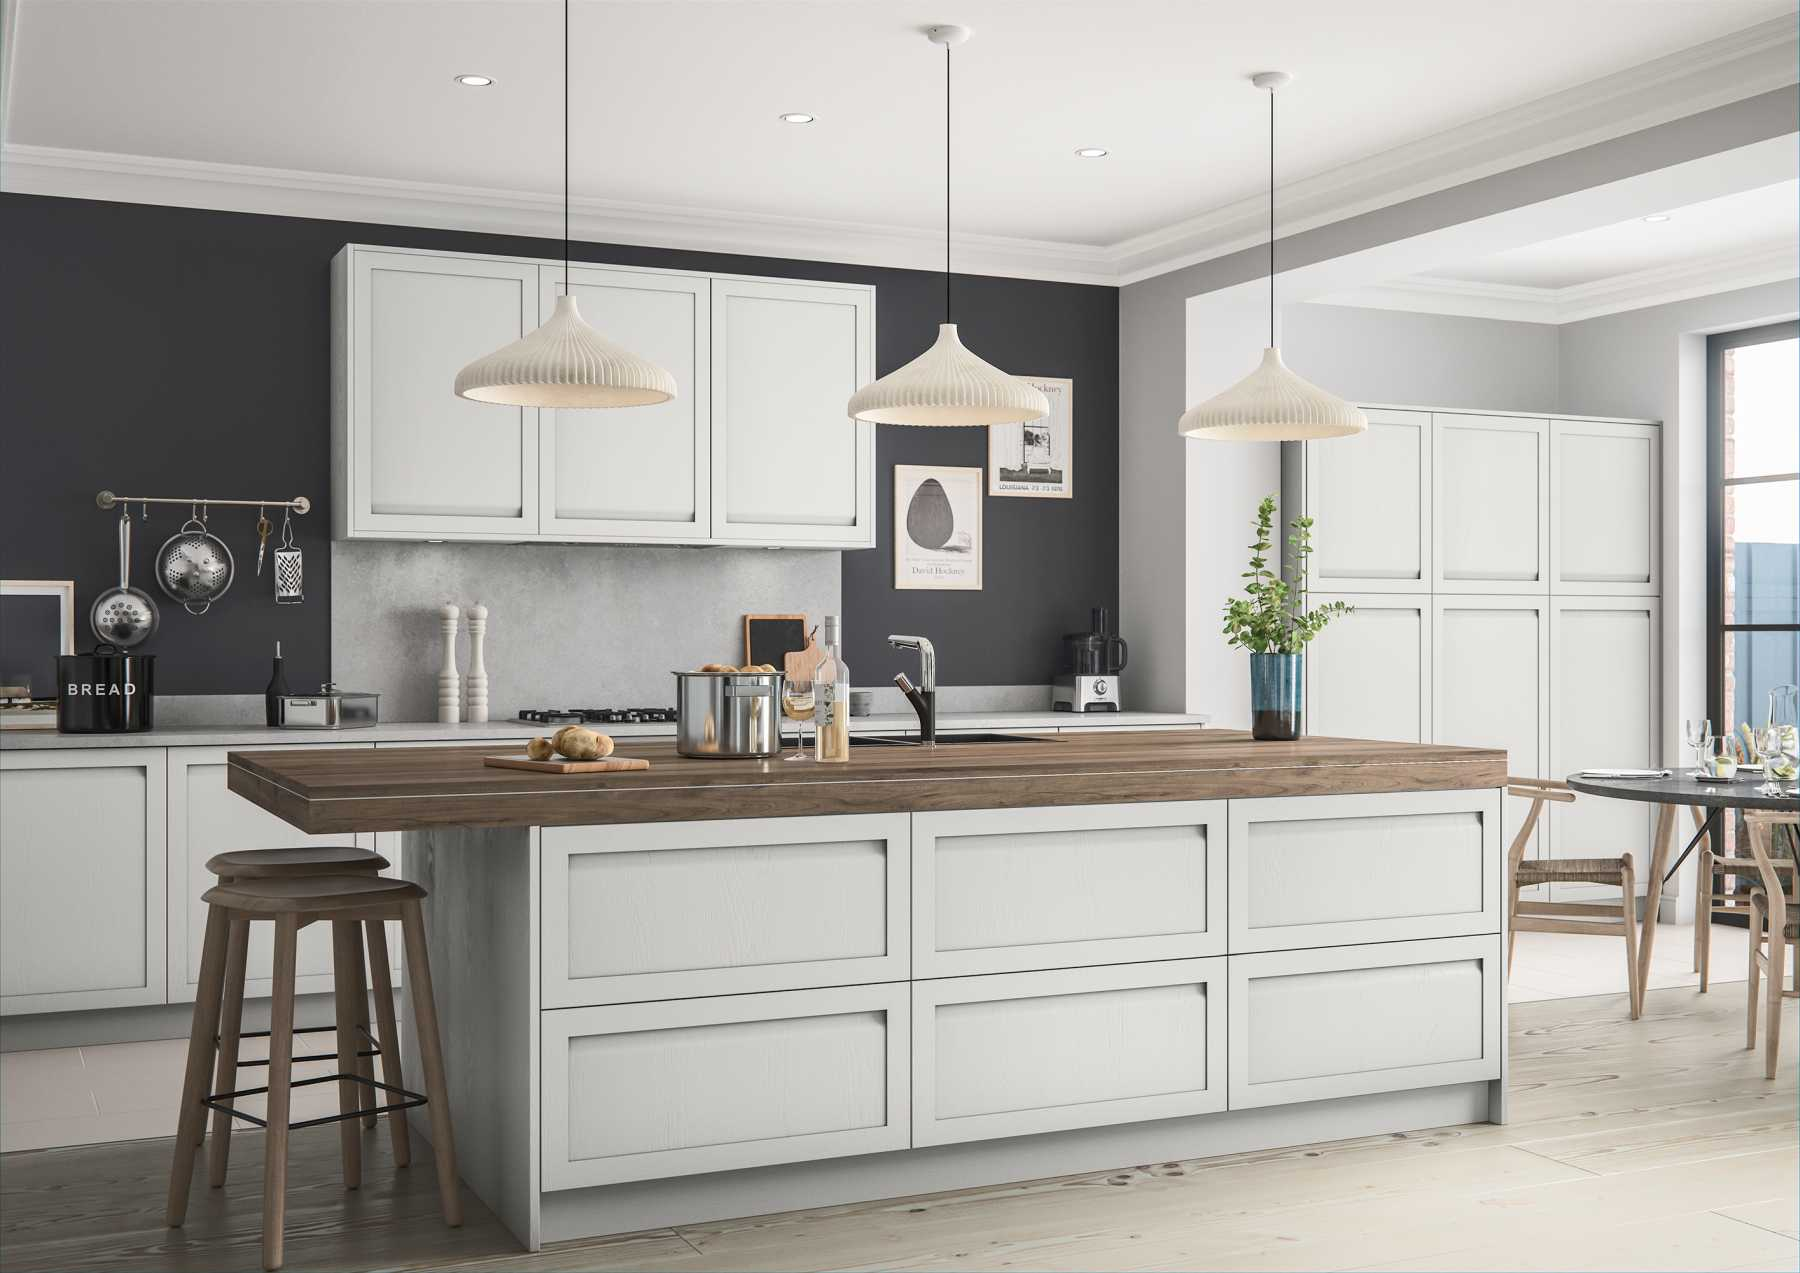 Contemporary handleless shaker style kitchen painted matte light grey